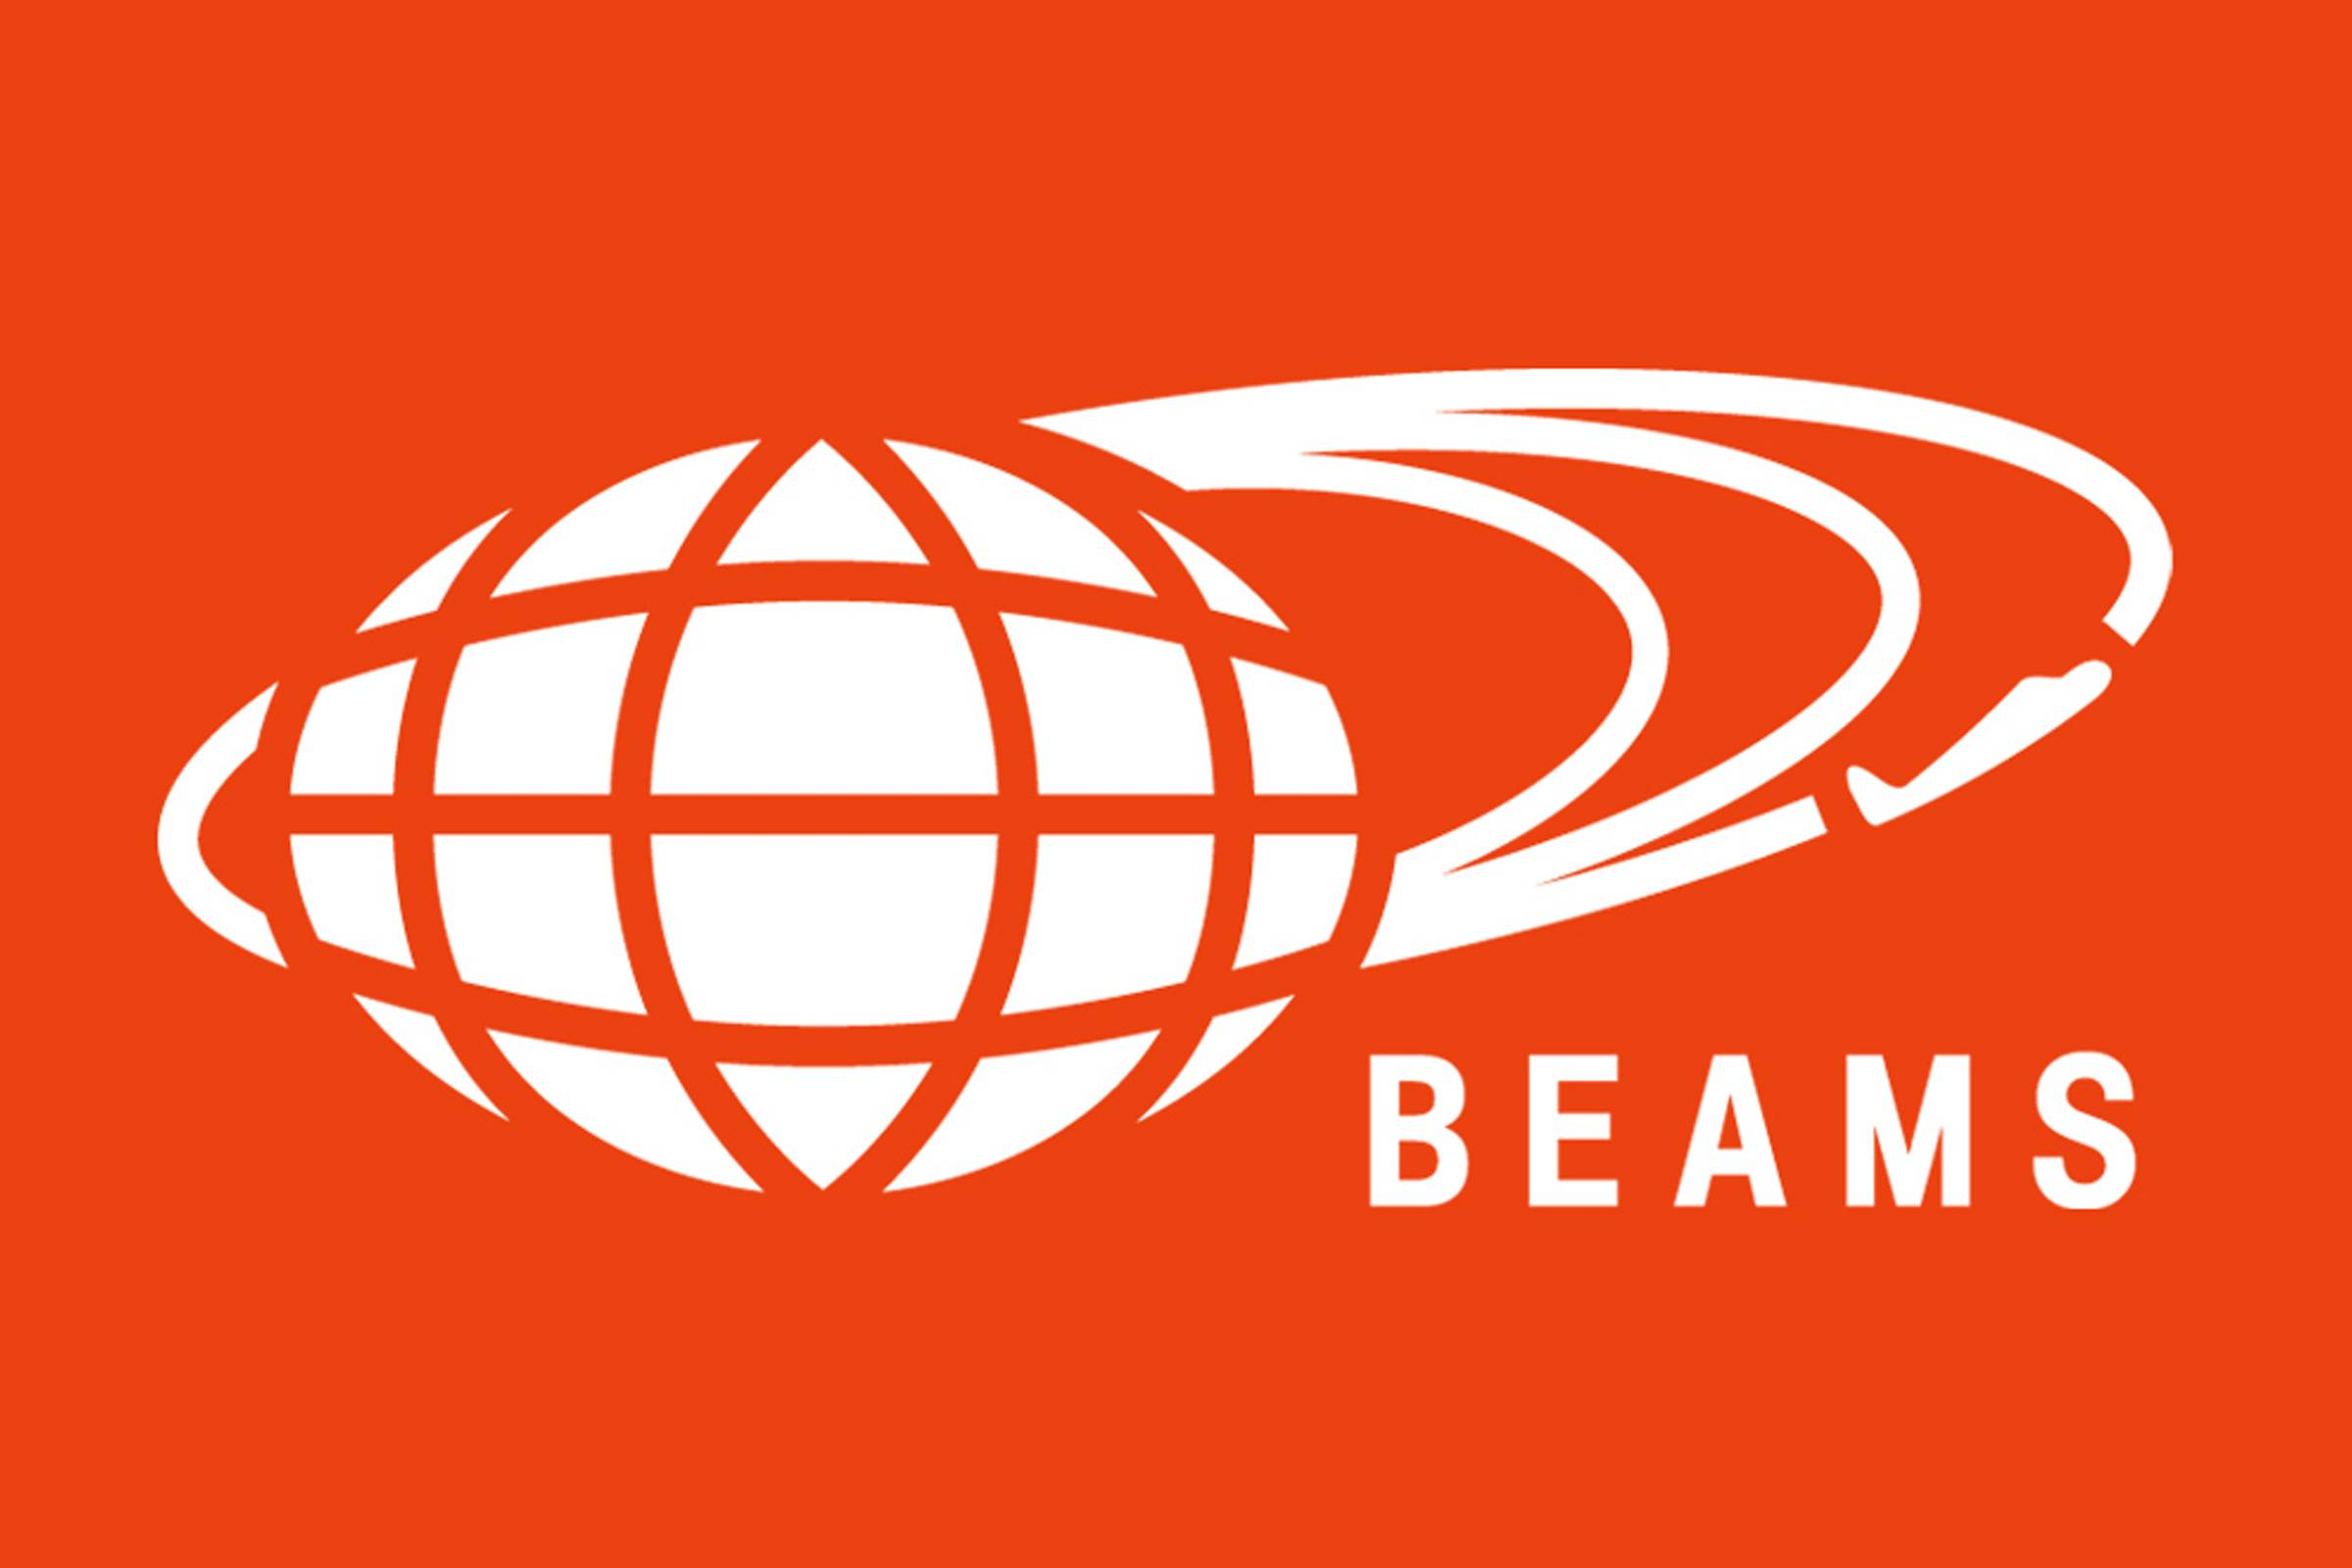 Influential japanese lifestyle and apparel brand beams has - A Brief History Of Beams